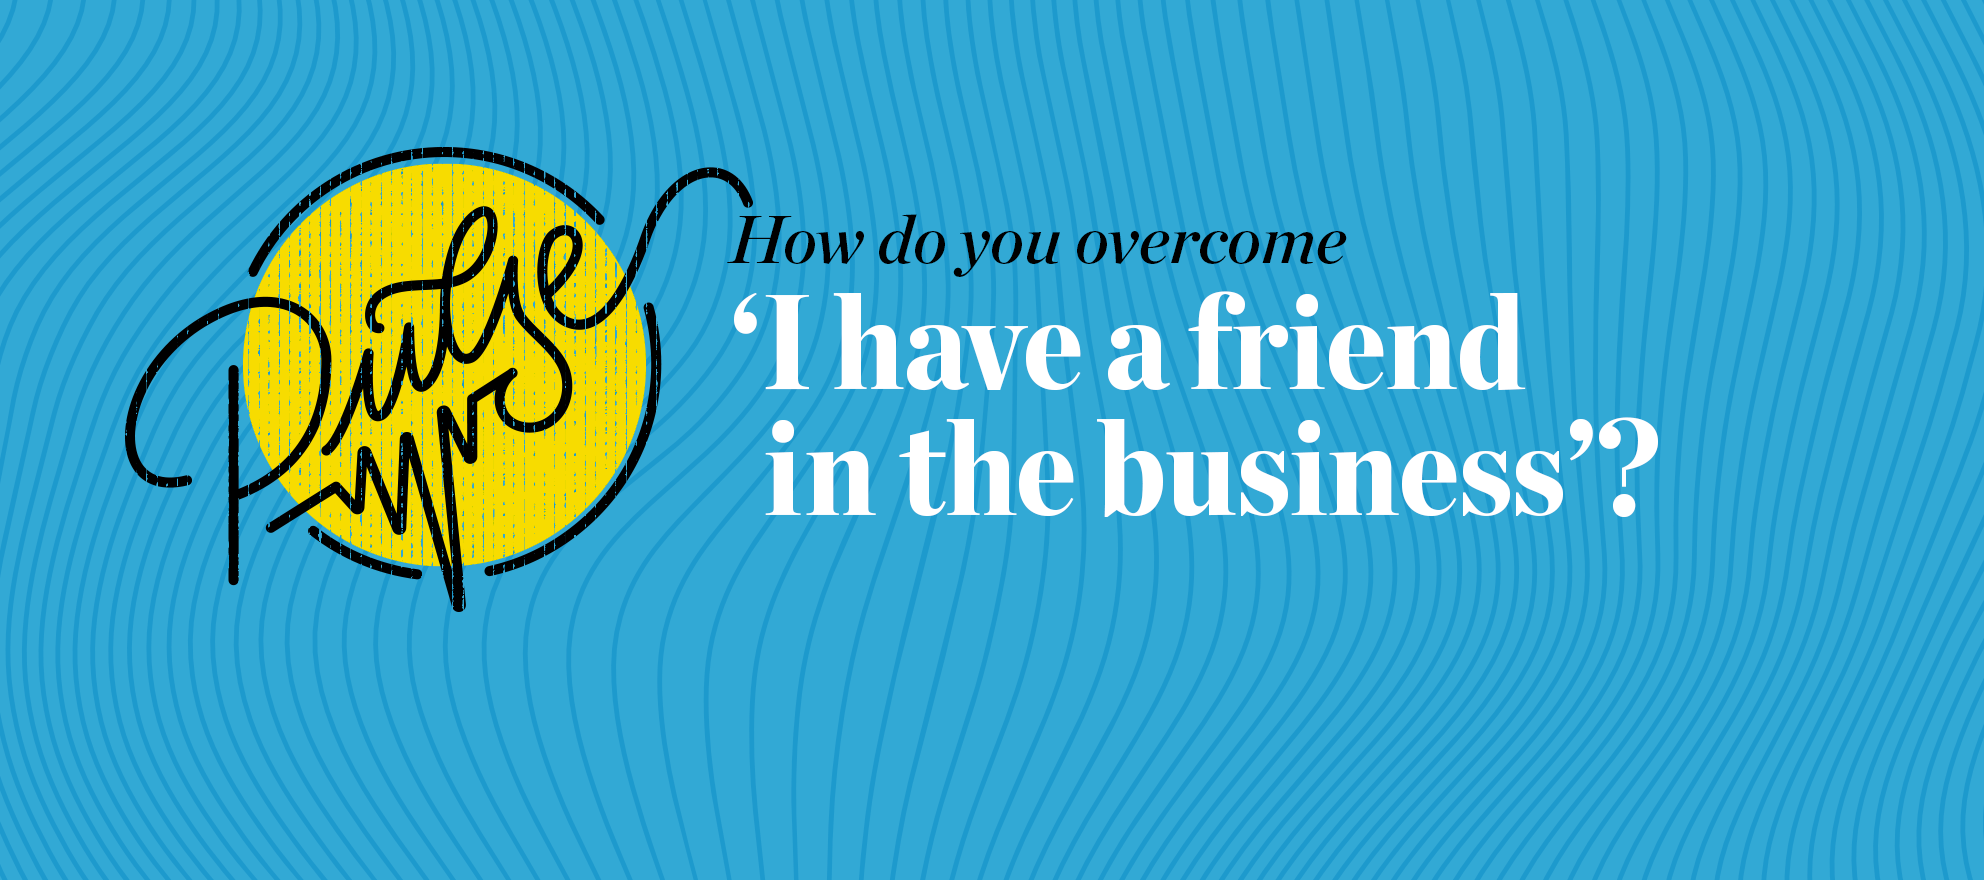 Pulse: 'I have a friend in the business,' 28 ways to respond